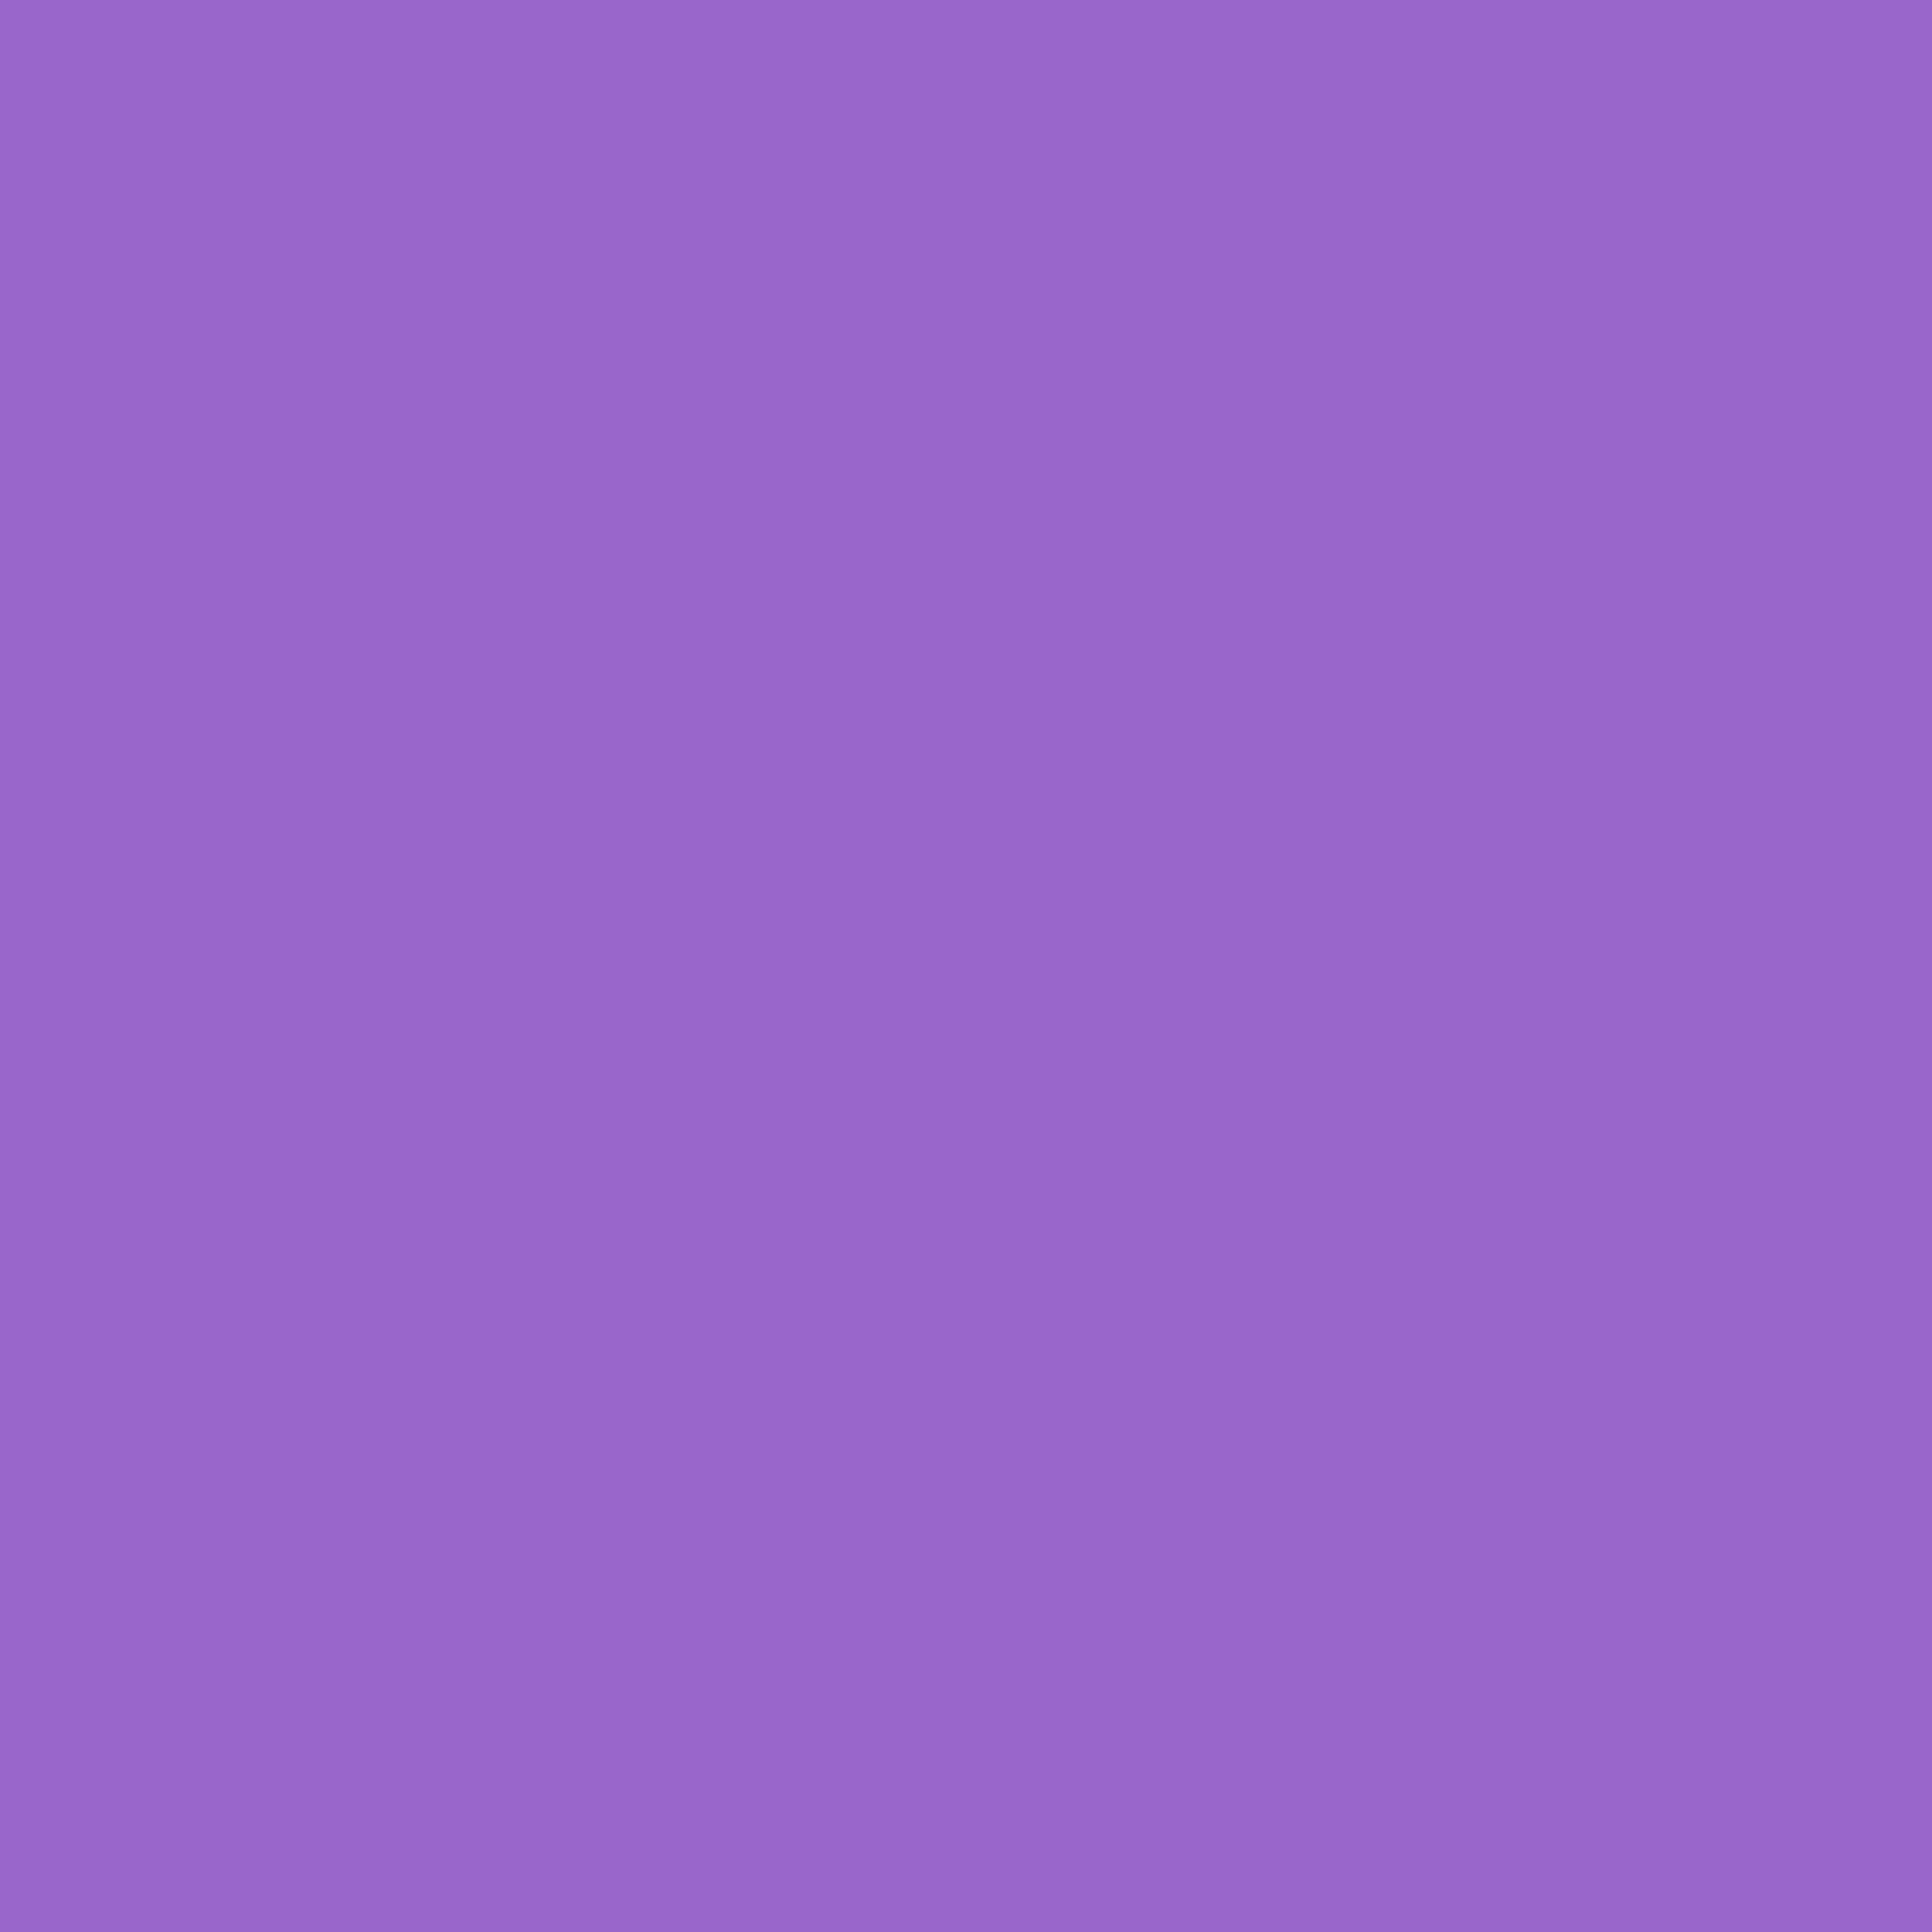 2732x2732 Amethyst Solid Color Background